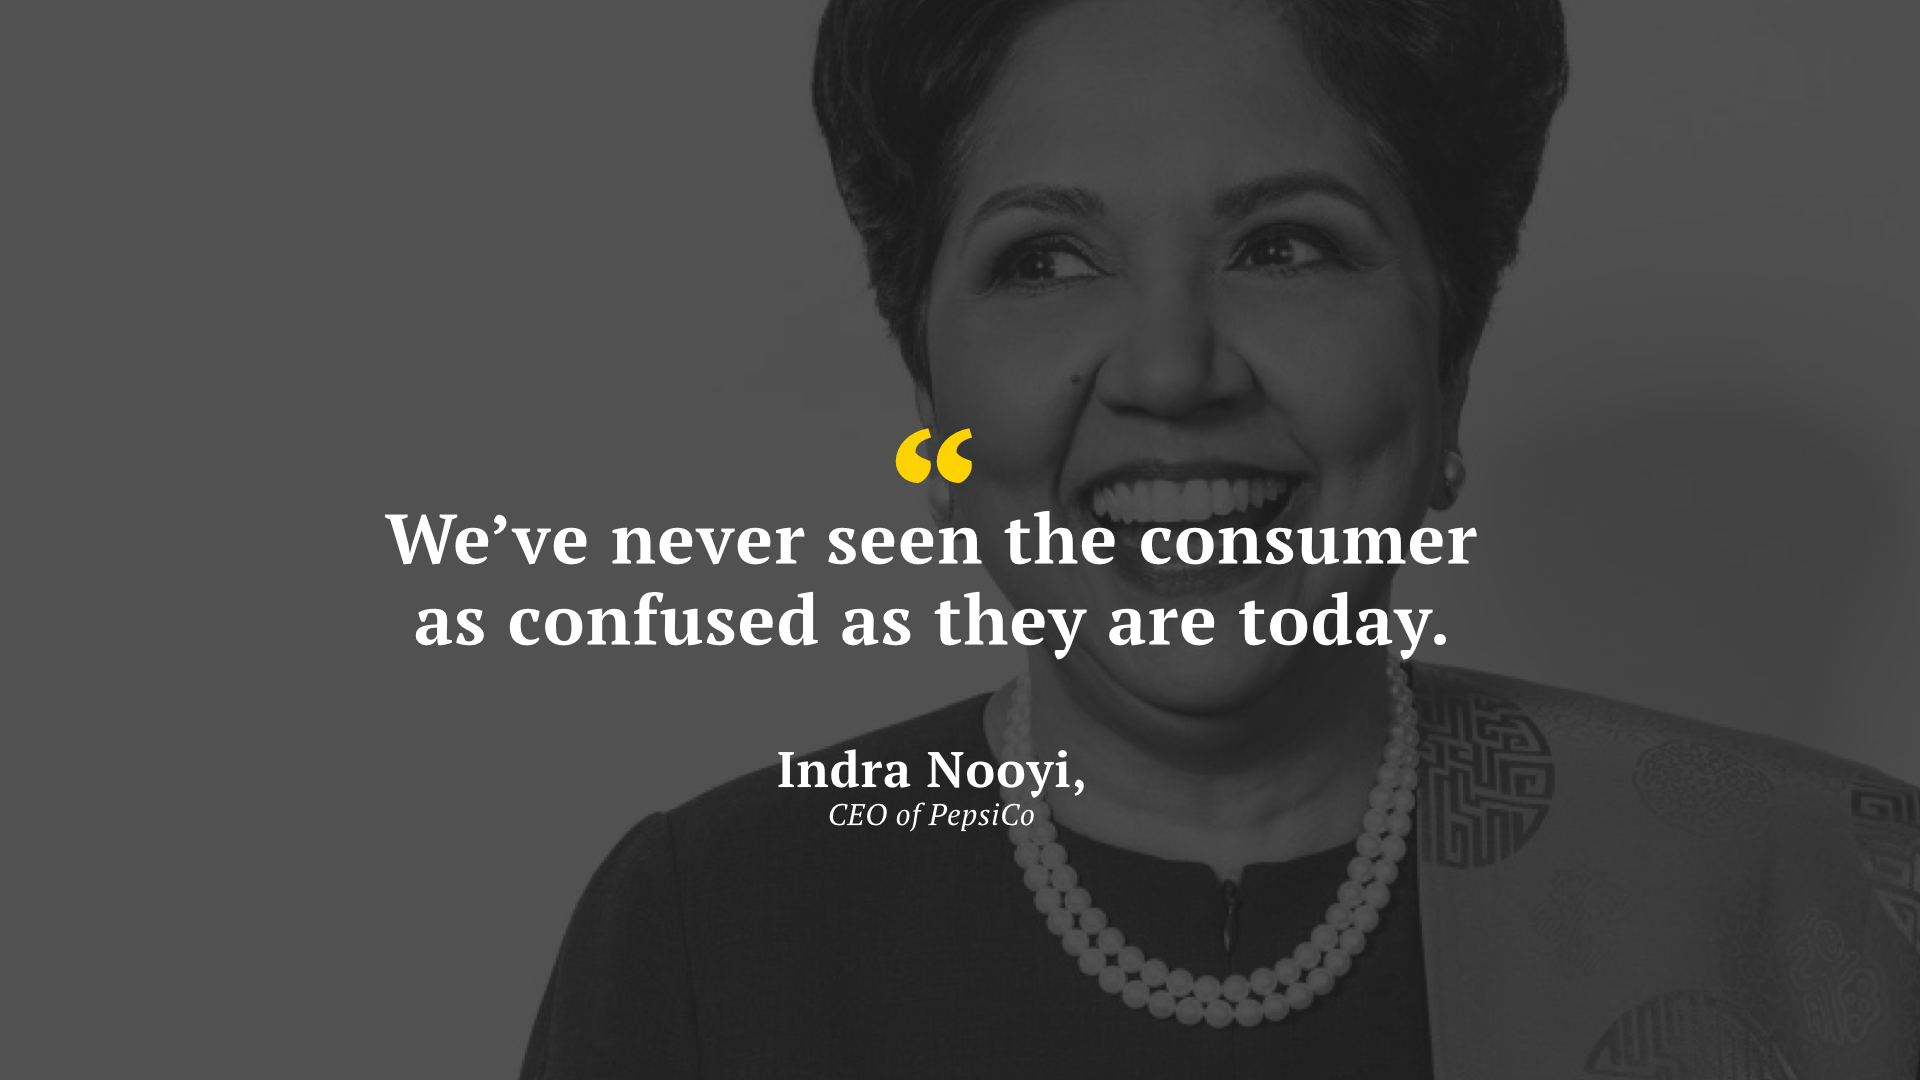 Industry leaders such as Indra Nooyi, CEO of Pepsi admits that this uncertainty in the ingredients sector has caused total confusion amongst food shoppers today.